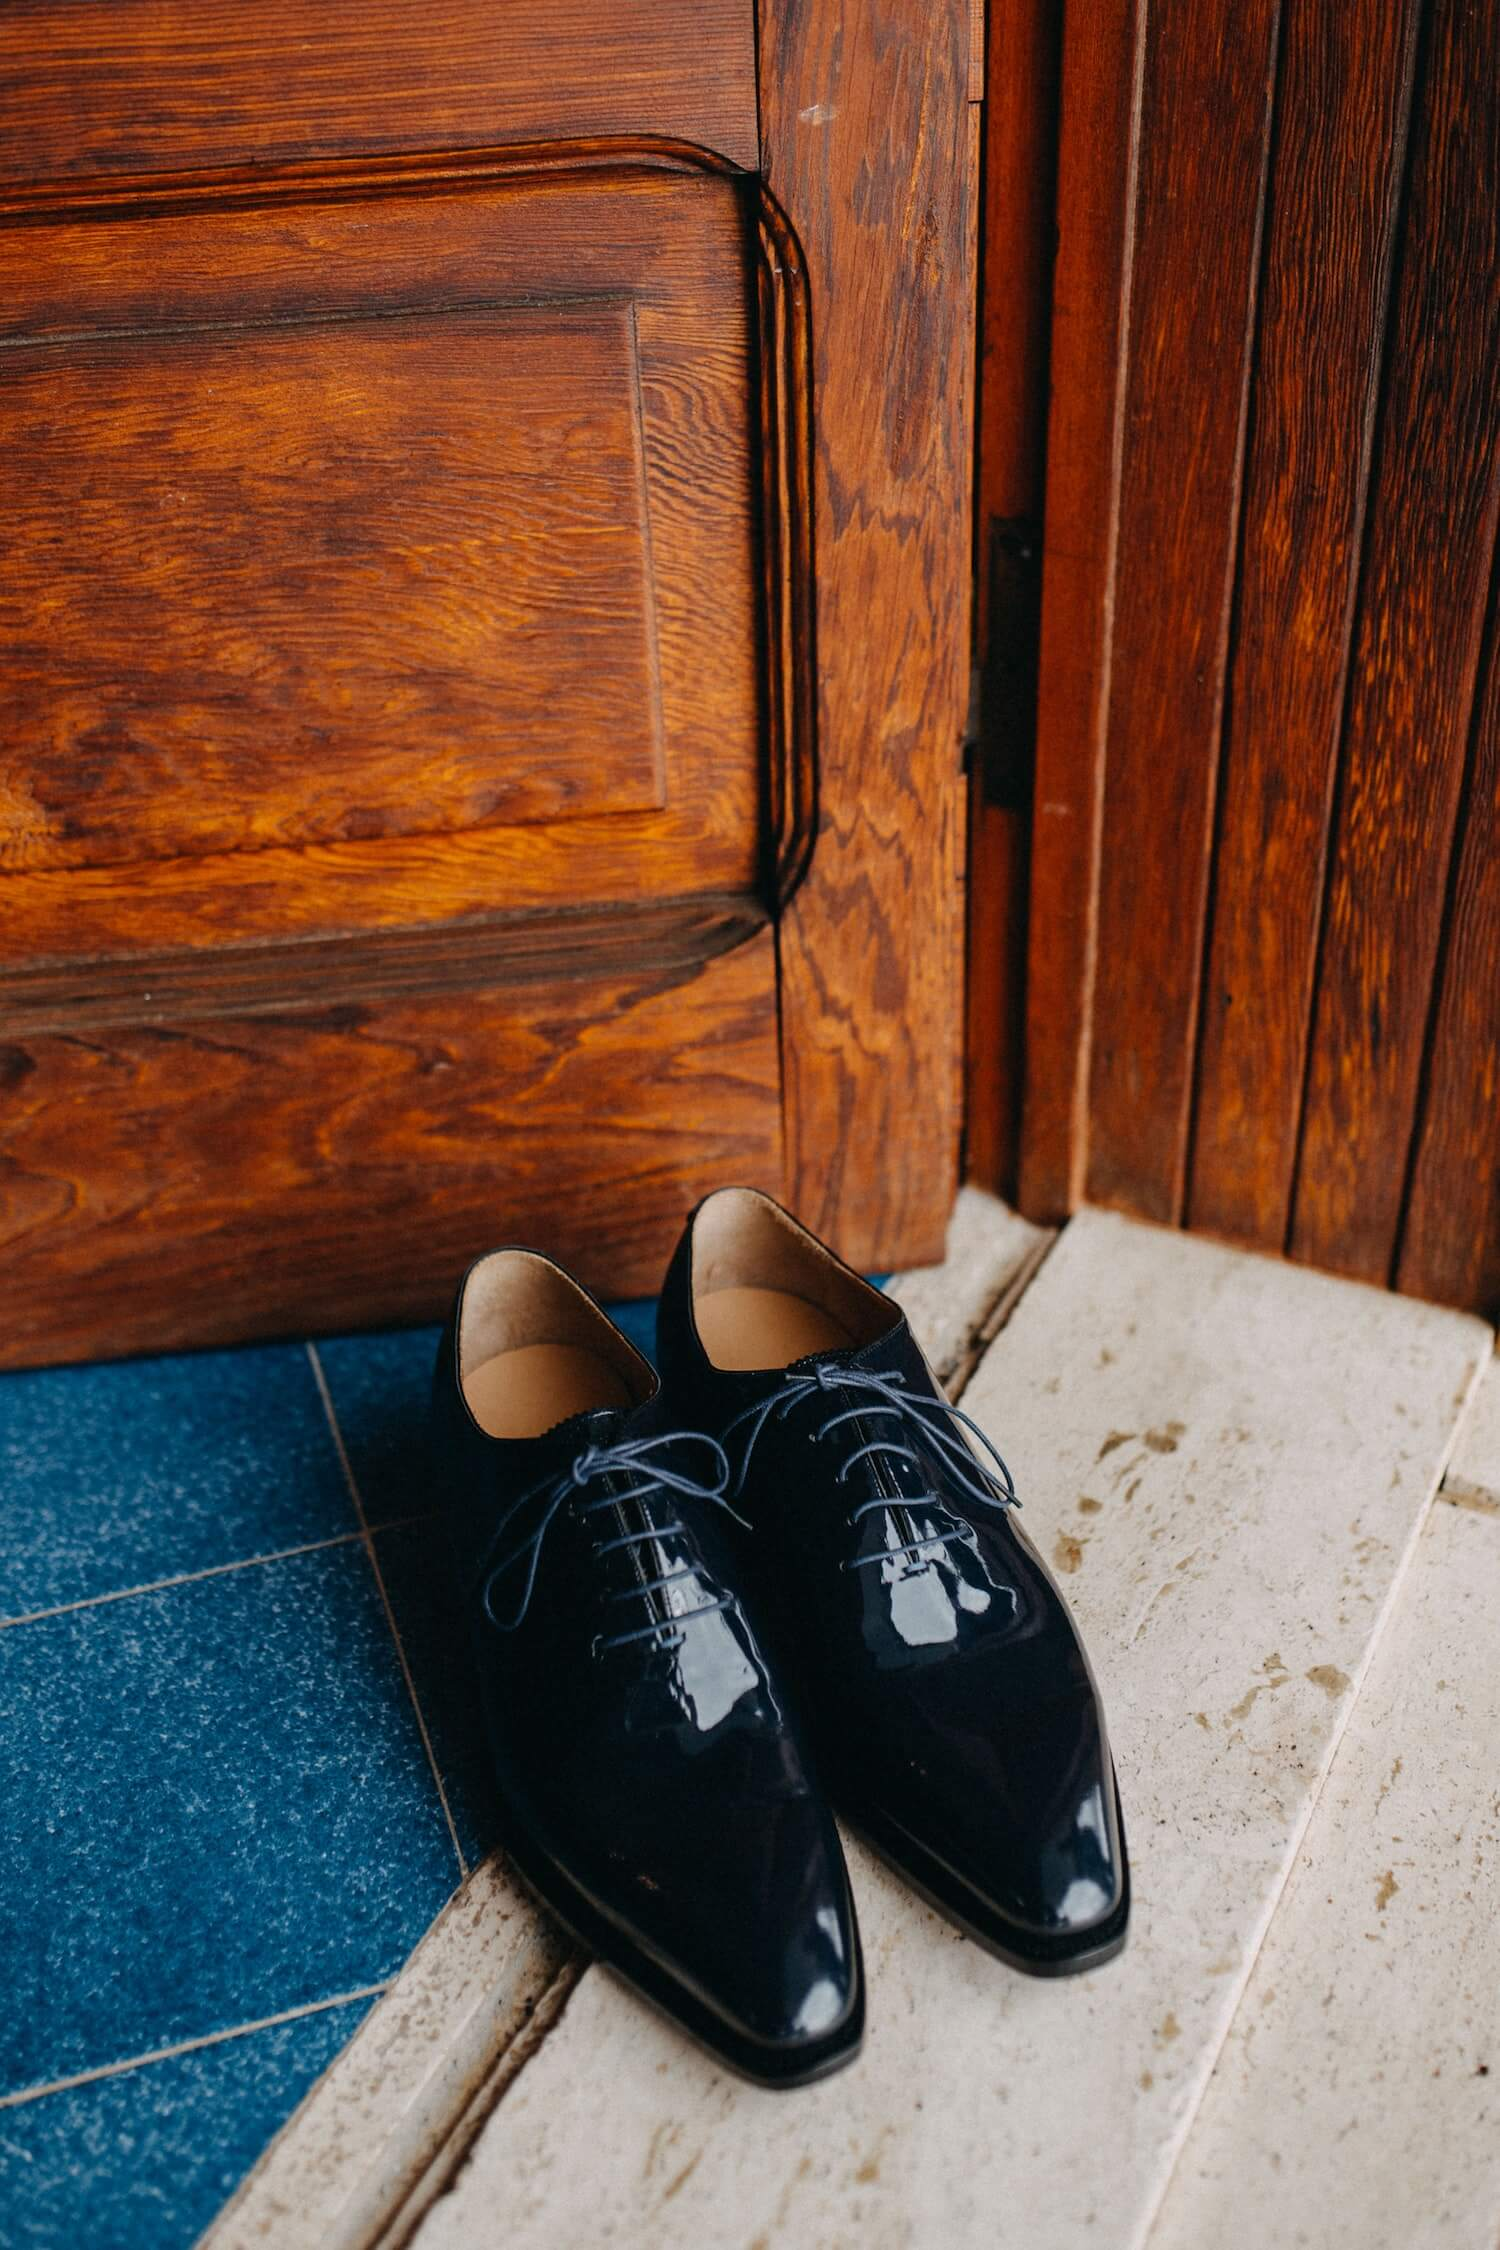 Very Polished Black Shoes With NoSeams Sitting at the Front Door